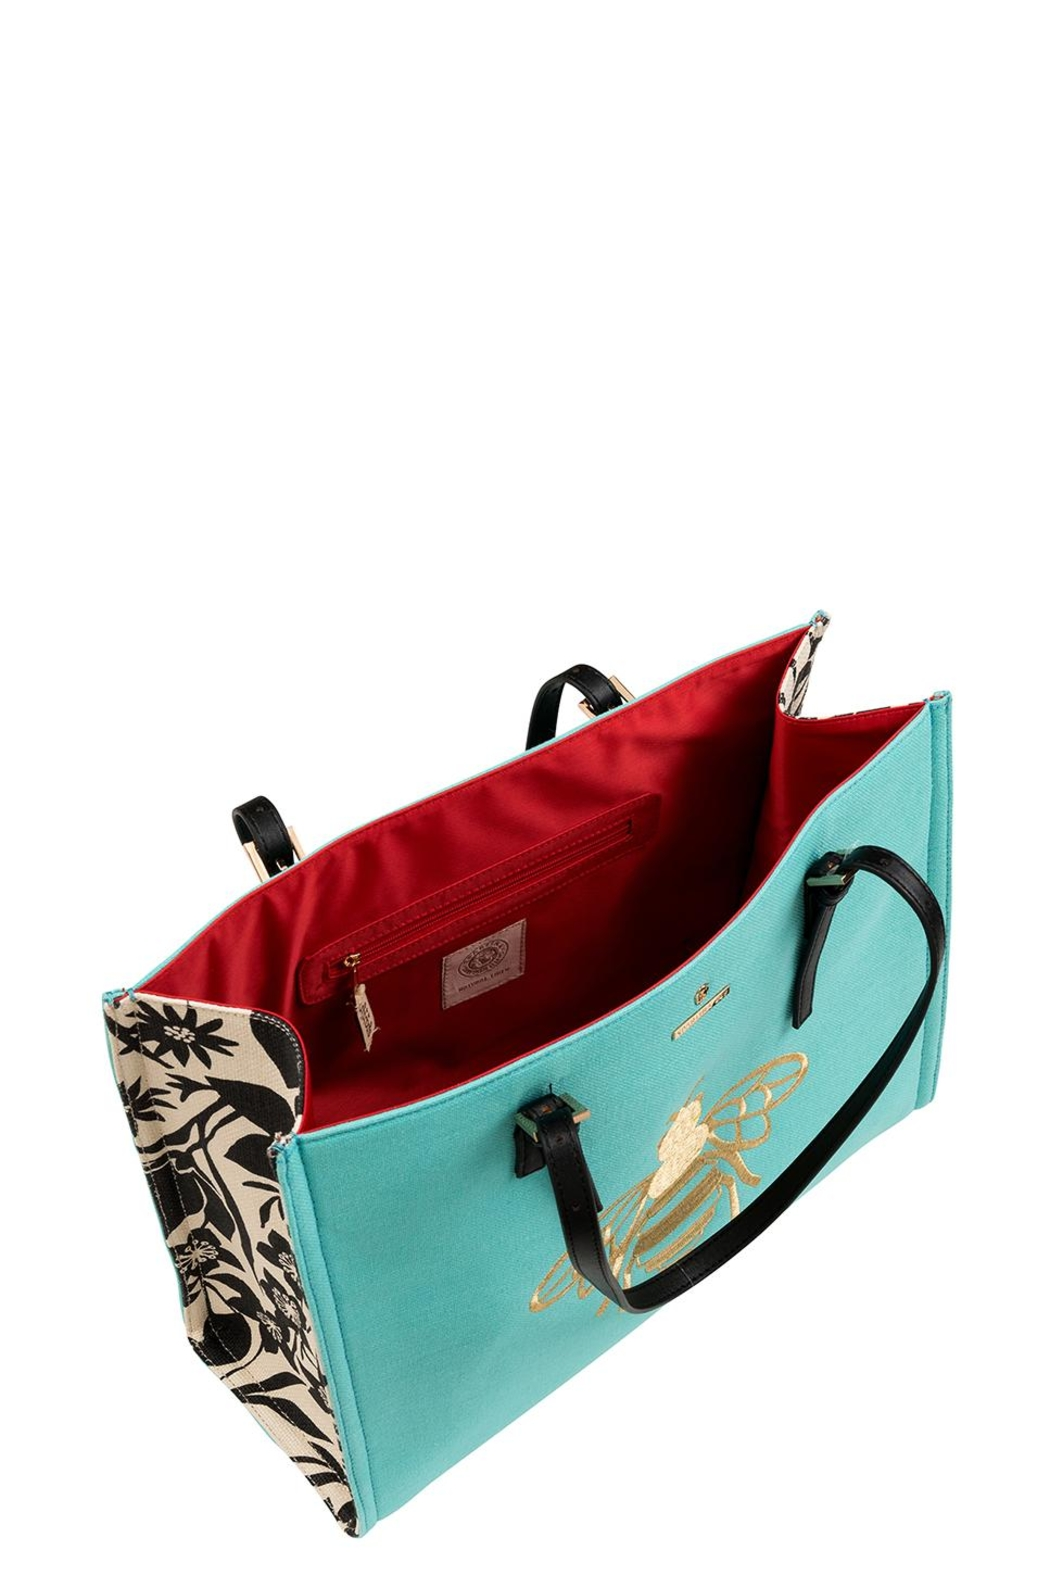 Spartina 449 Bumblebee Sand Tote Bag - Front Full Image